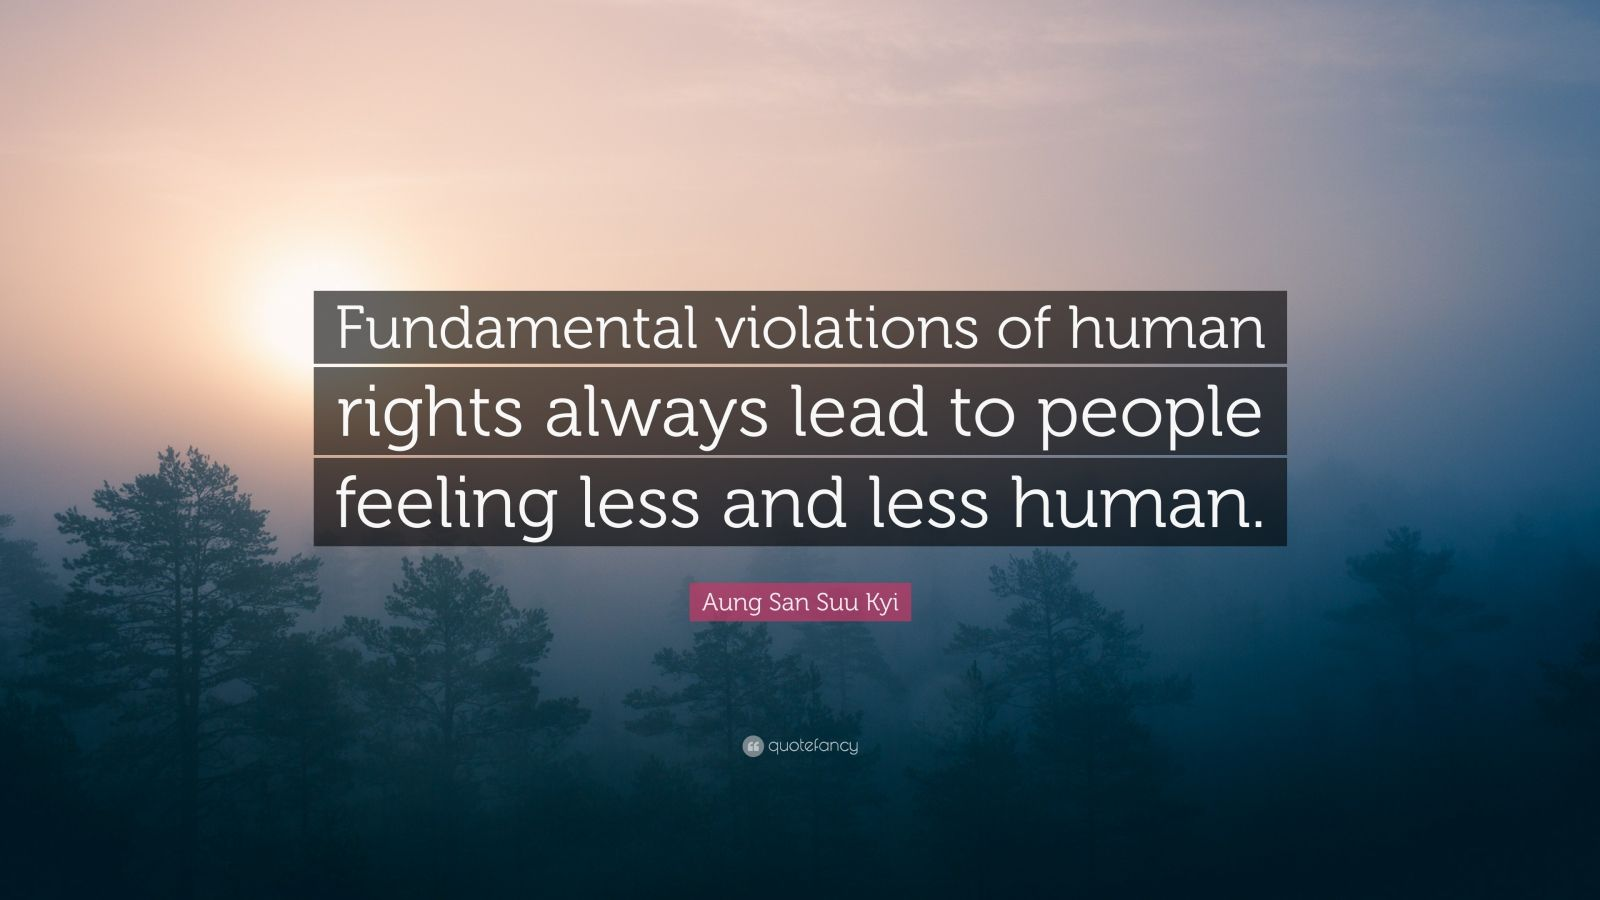 """Aung San Suu Kyi Quote: """"Fundamental violations of human rights always lead to people feeling less and less human."""""""